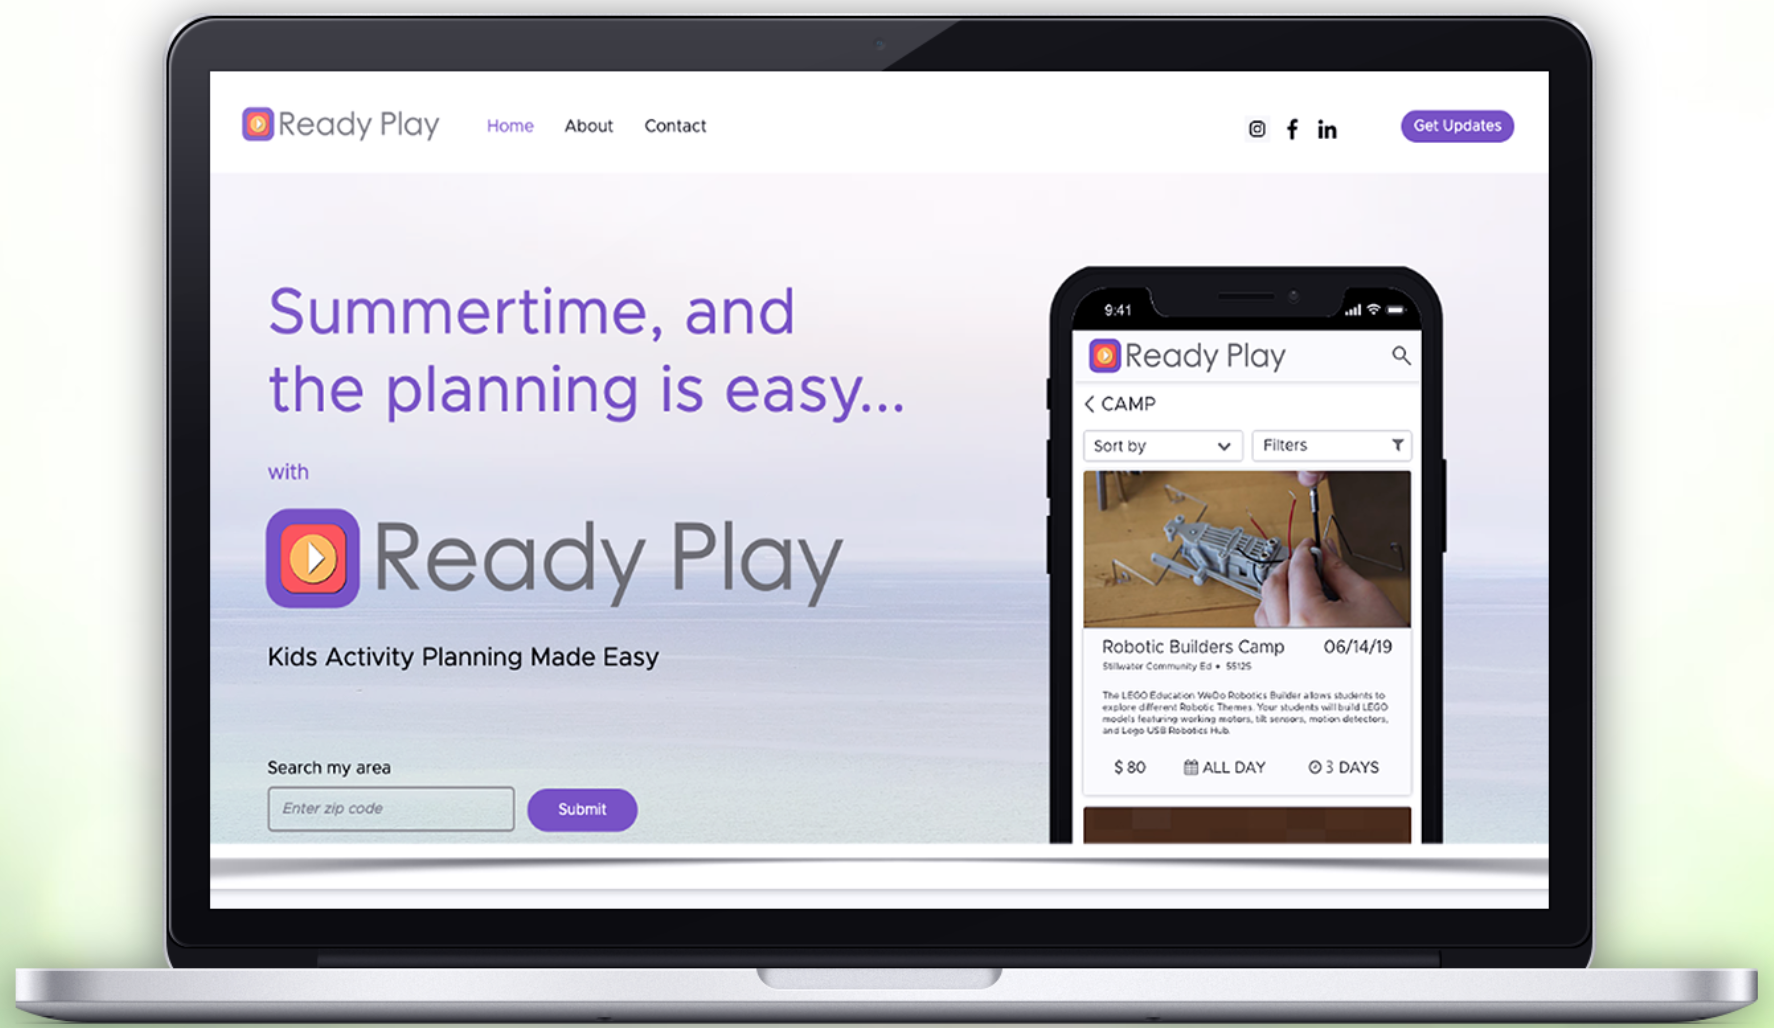 Ready Play's web portal